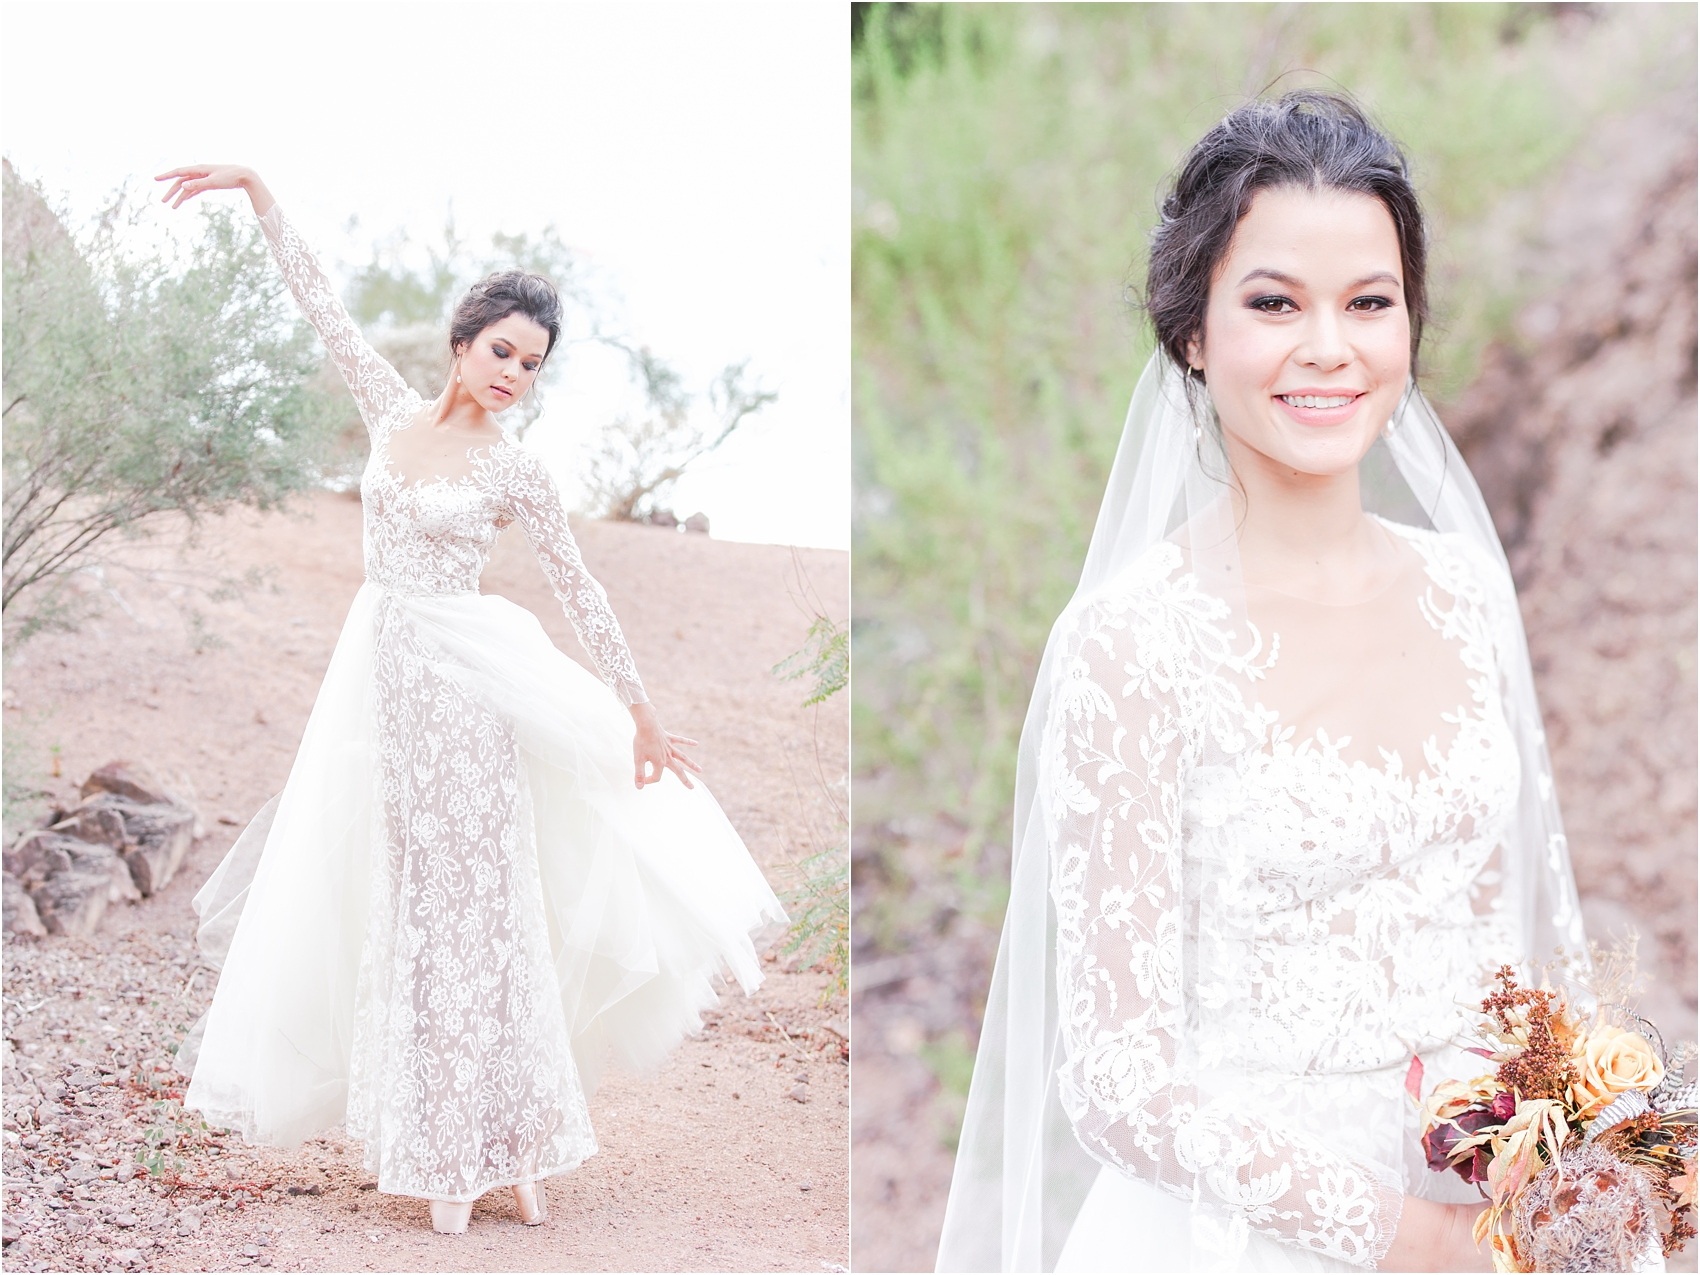 paris-and-ballerina-inspired-bride-wedding-photos-at-phoenix-marriott-tempe-at-the-buttes-in-tempe-arizona-by-courtney-carolyn-photography_0014.jpg